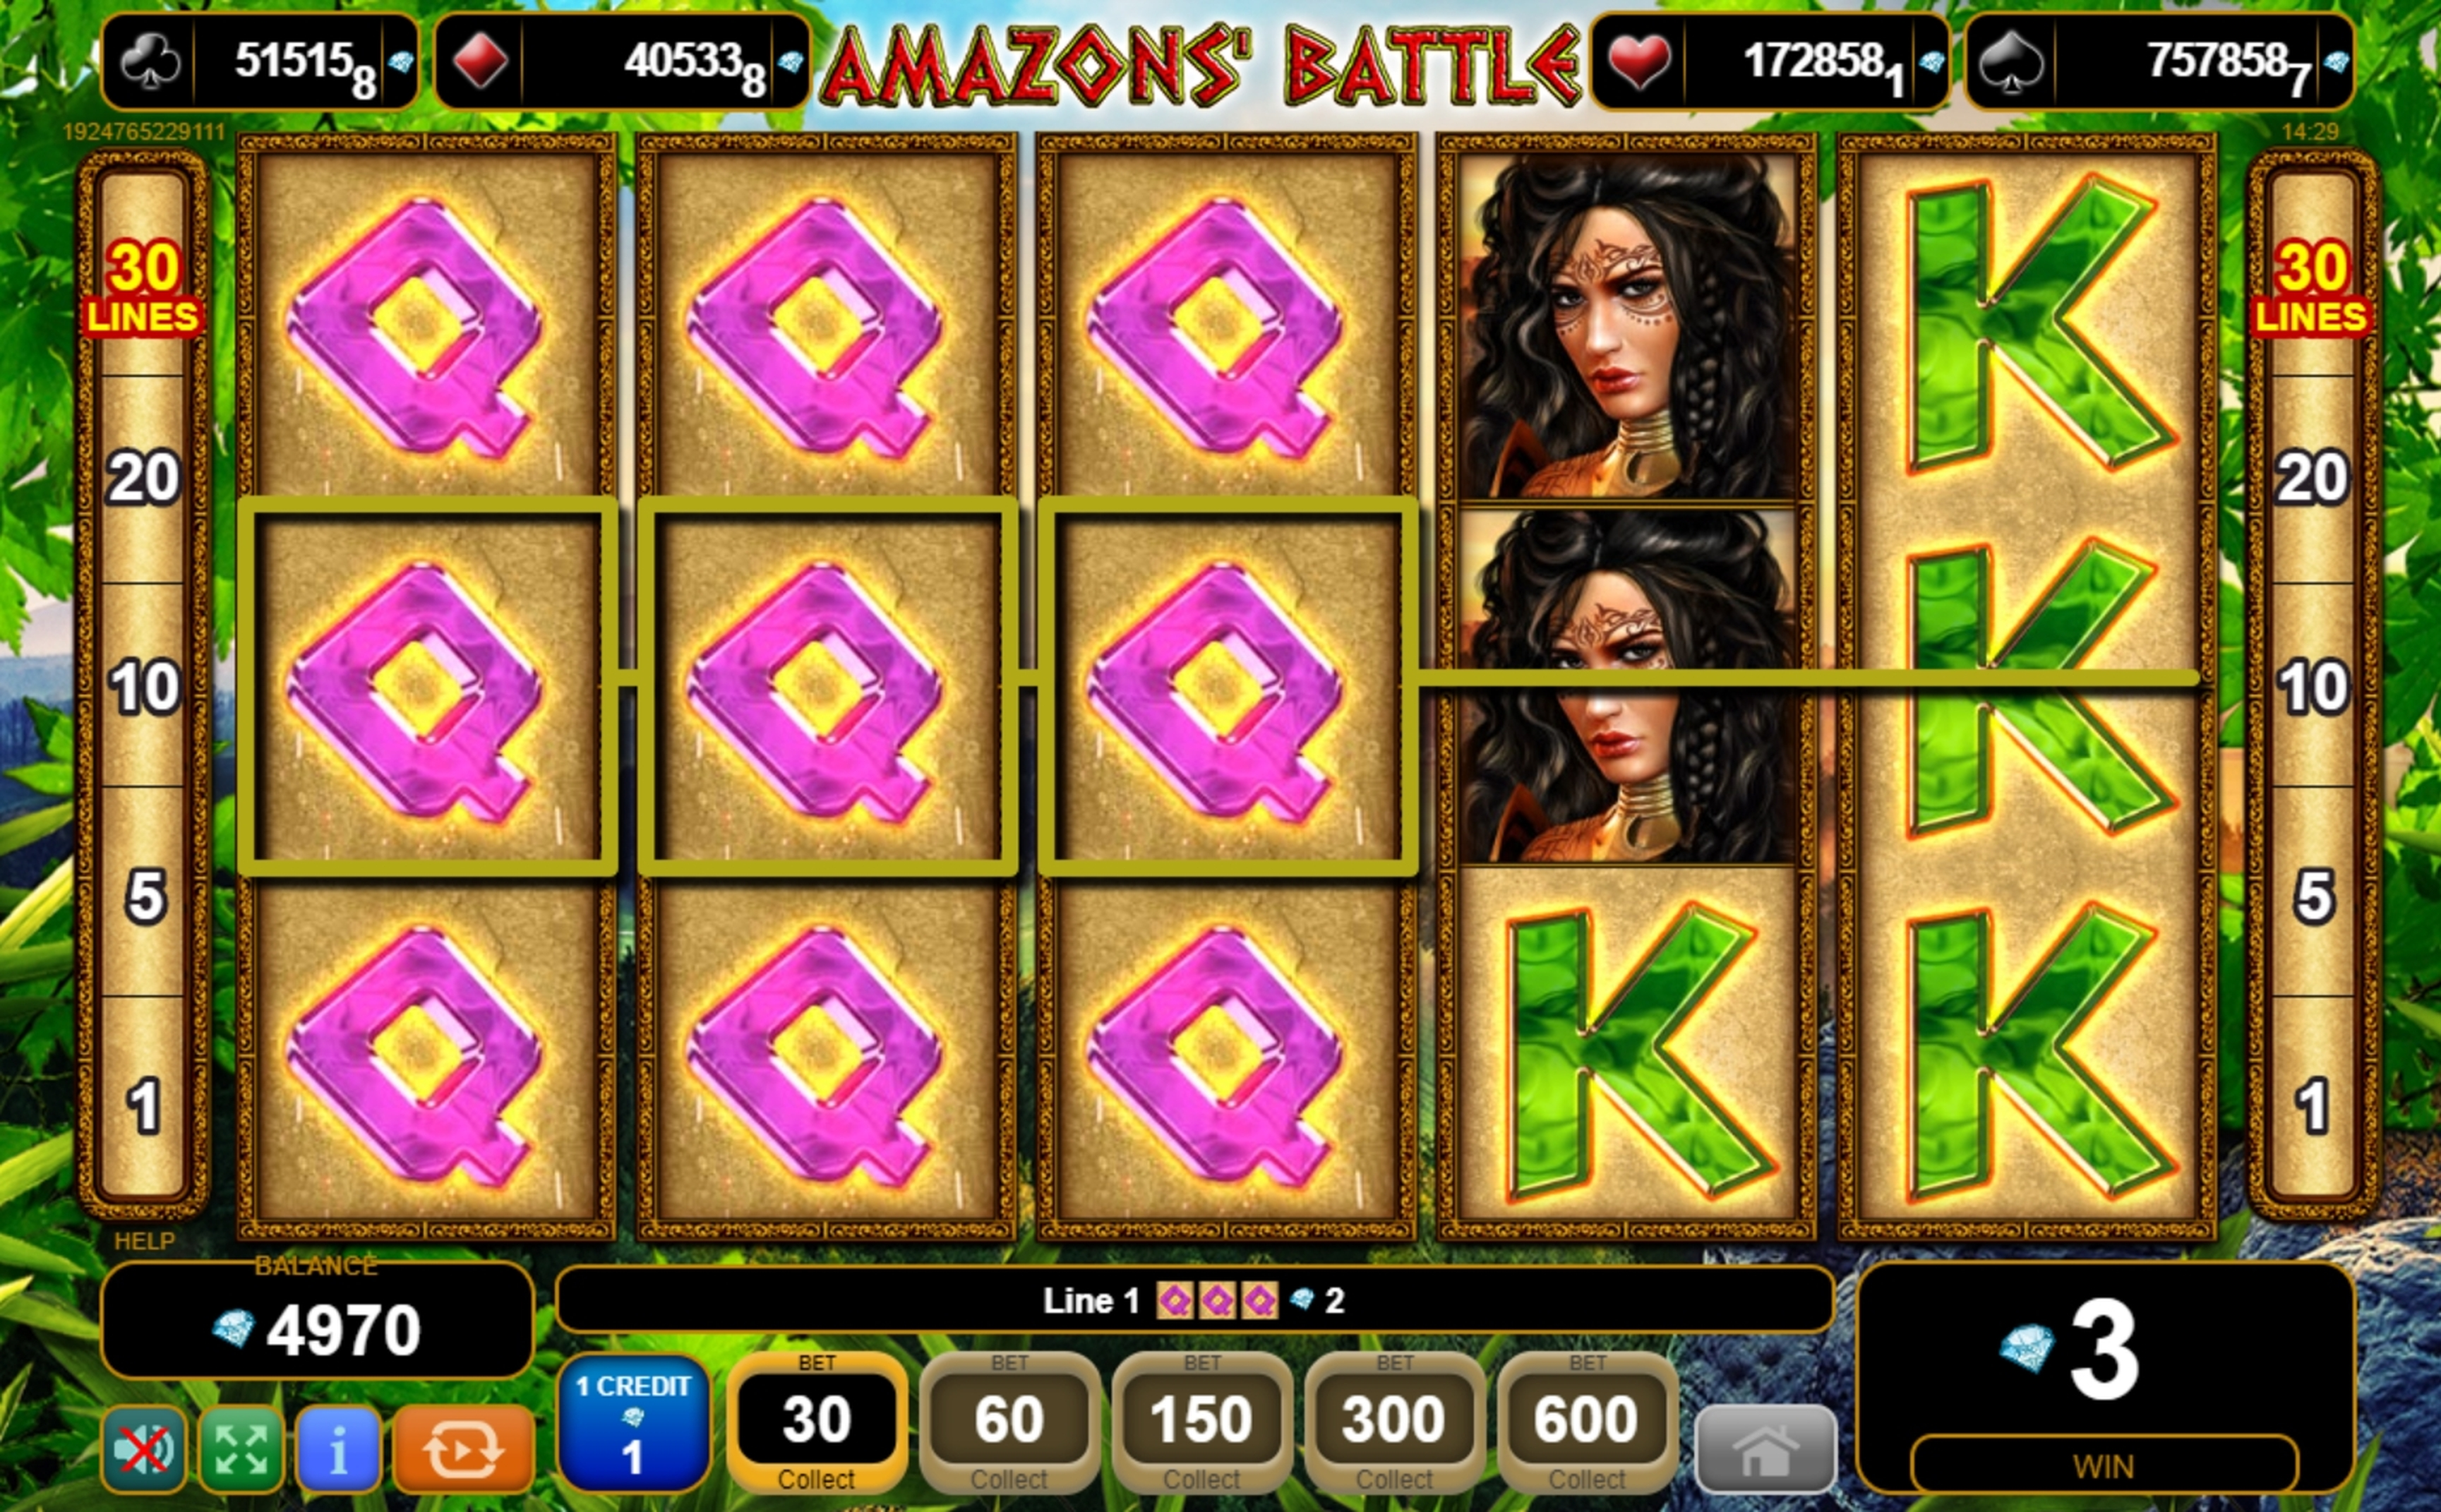 Wanna play free Battle slots online?List of + Battle-style Slot Machine Games! Instant Play! No registration or download! Only Battle Slots Online! Play for Real Money in Top Online Casinos with Bonuses!